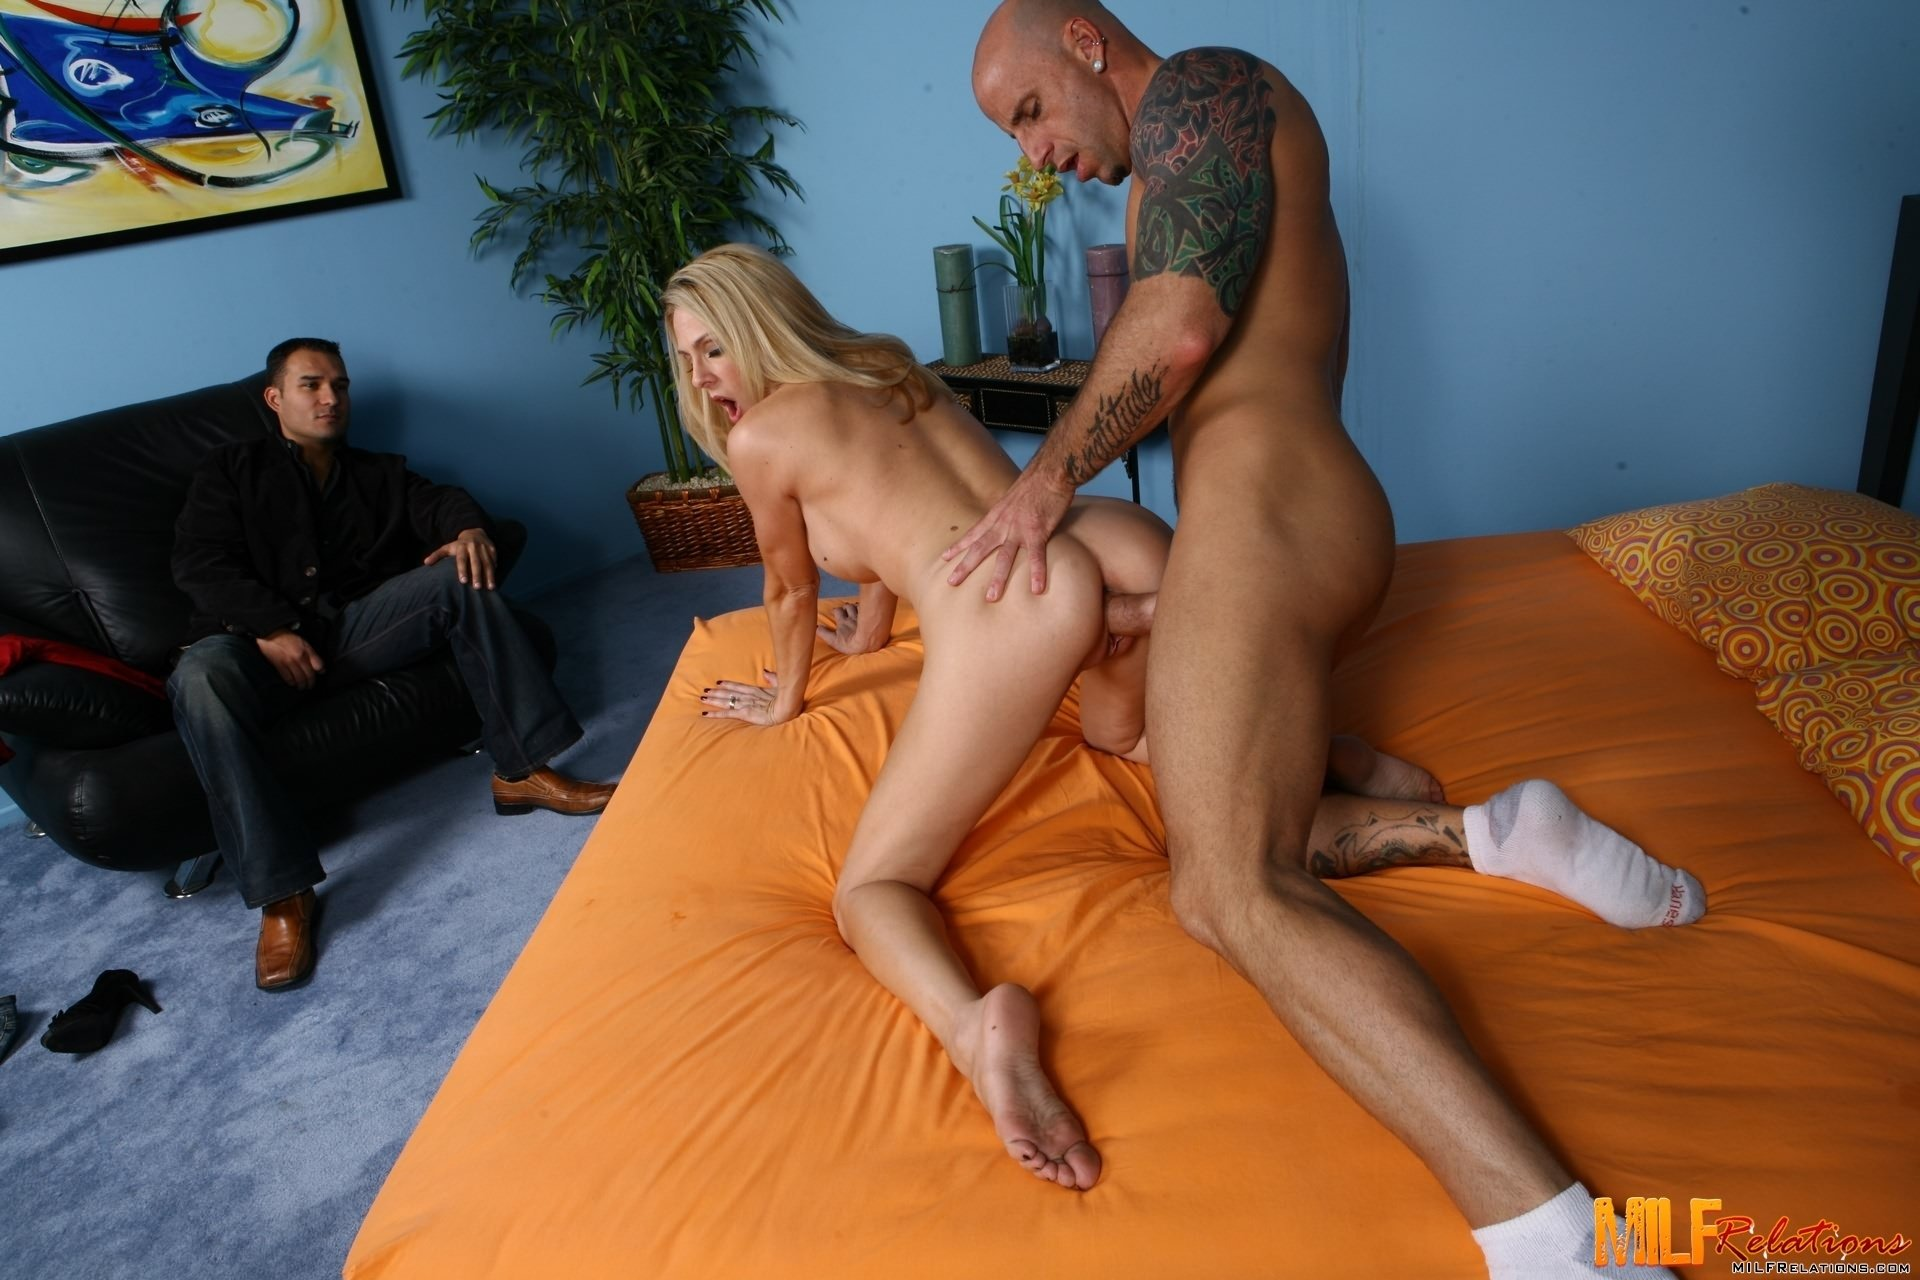 cuckold sessions free there